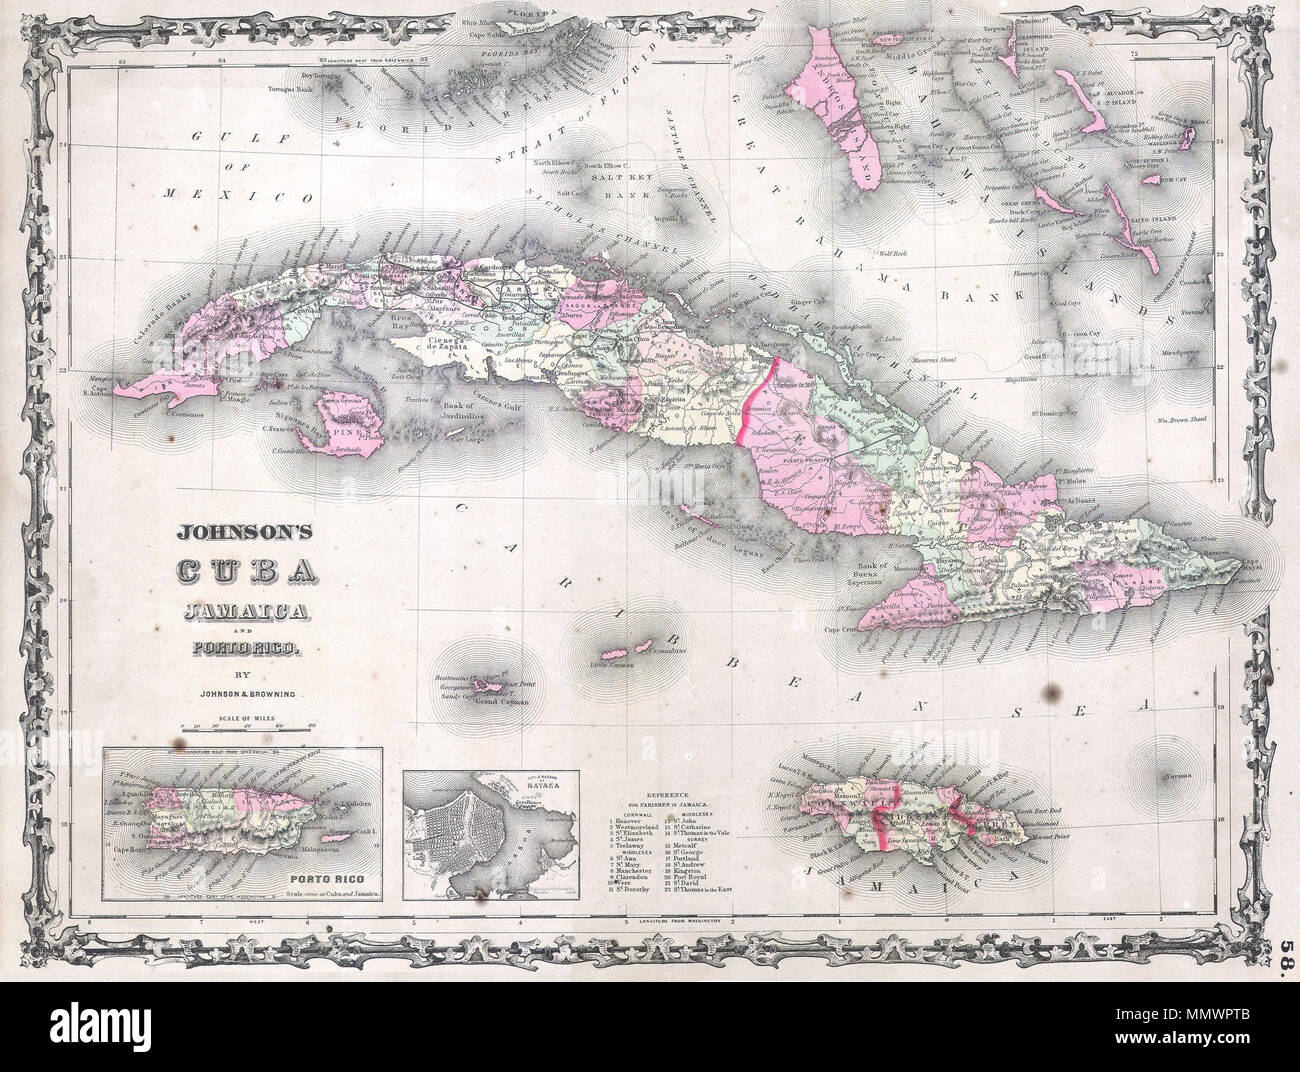 Map Of Florida Cuba And Puerto Rico.English This Is A Beautifully Hand Colored 1861 Map Of The West